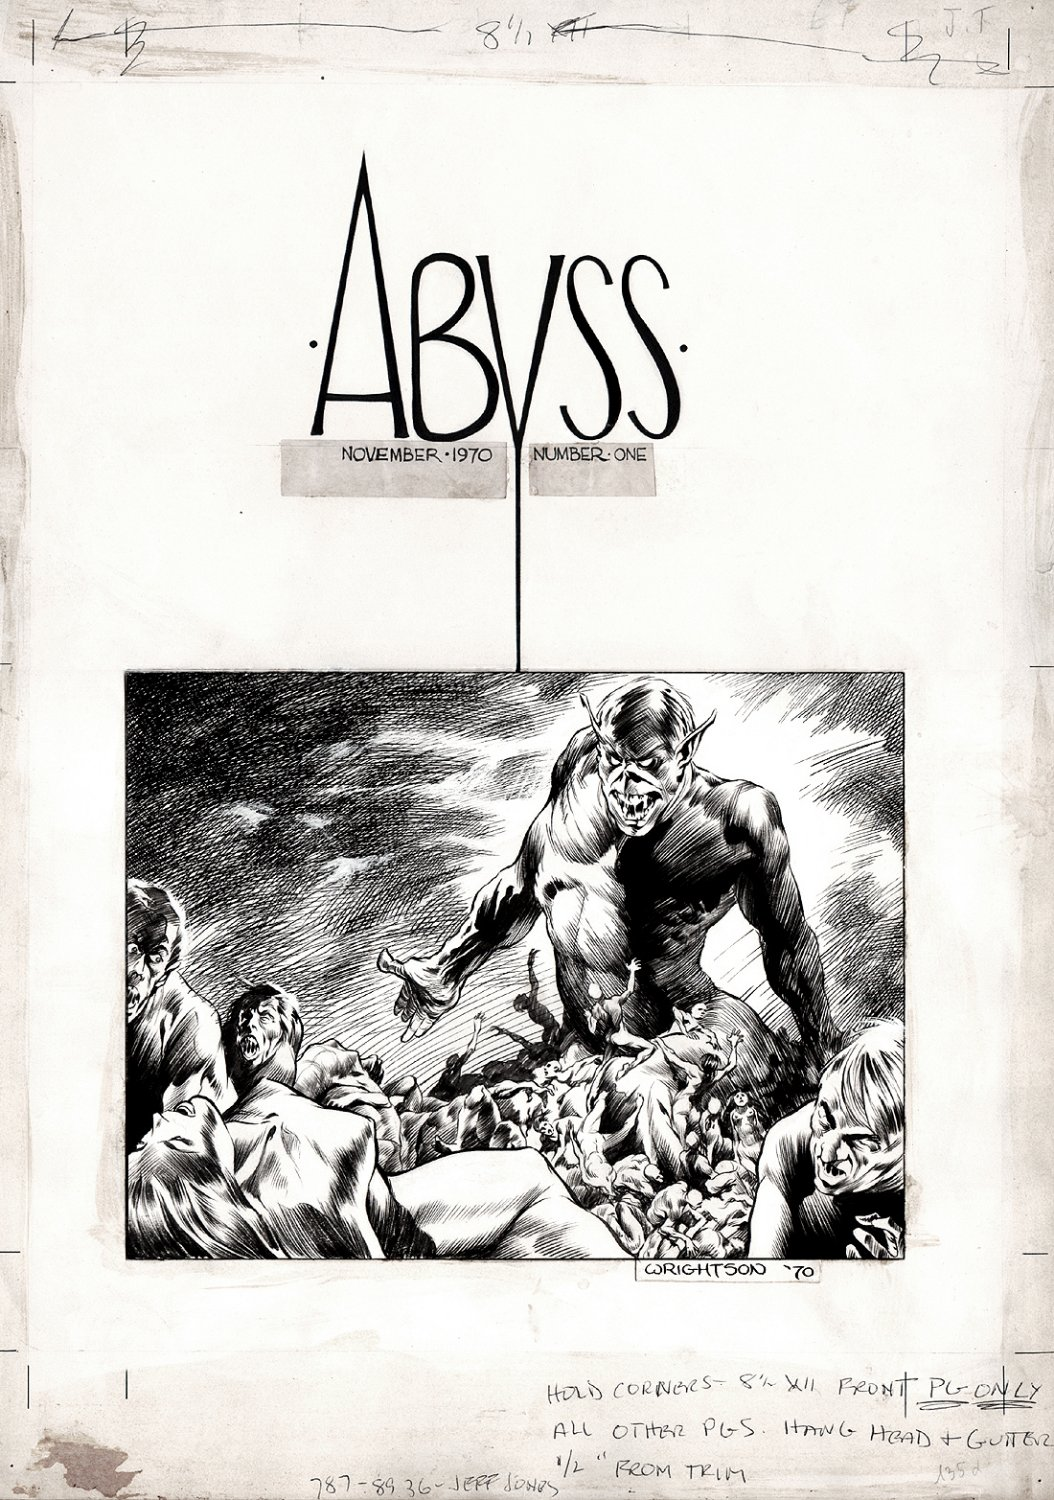 'The Abyss' Cover Art (1970)